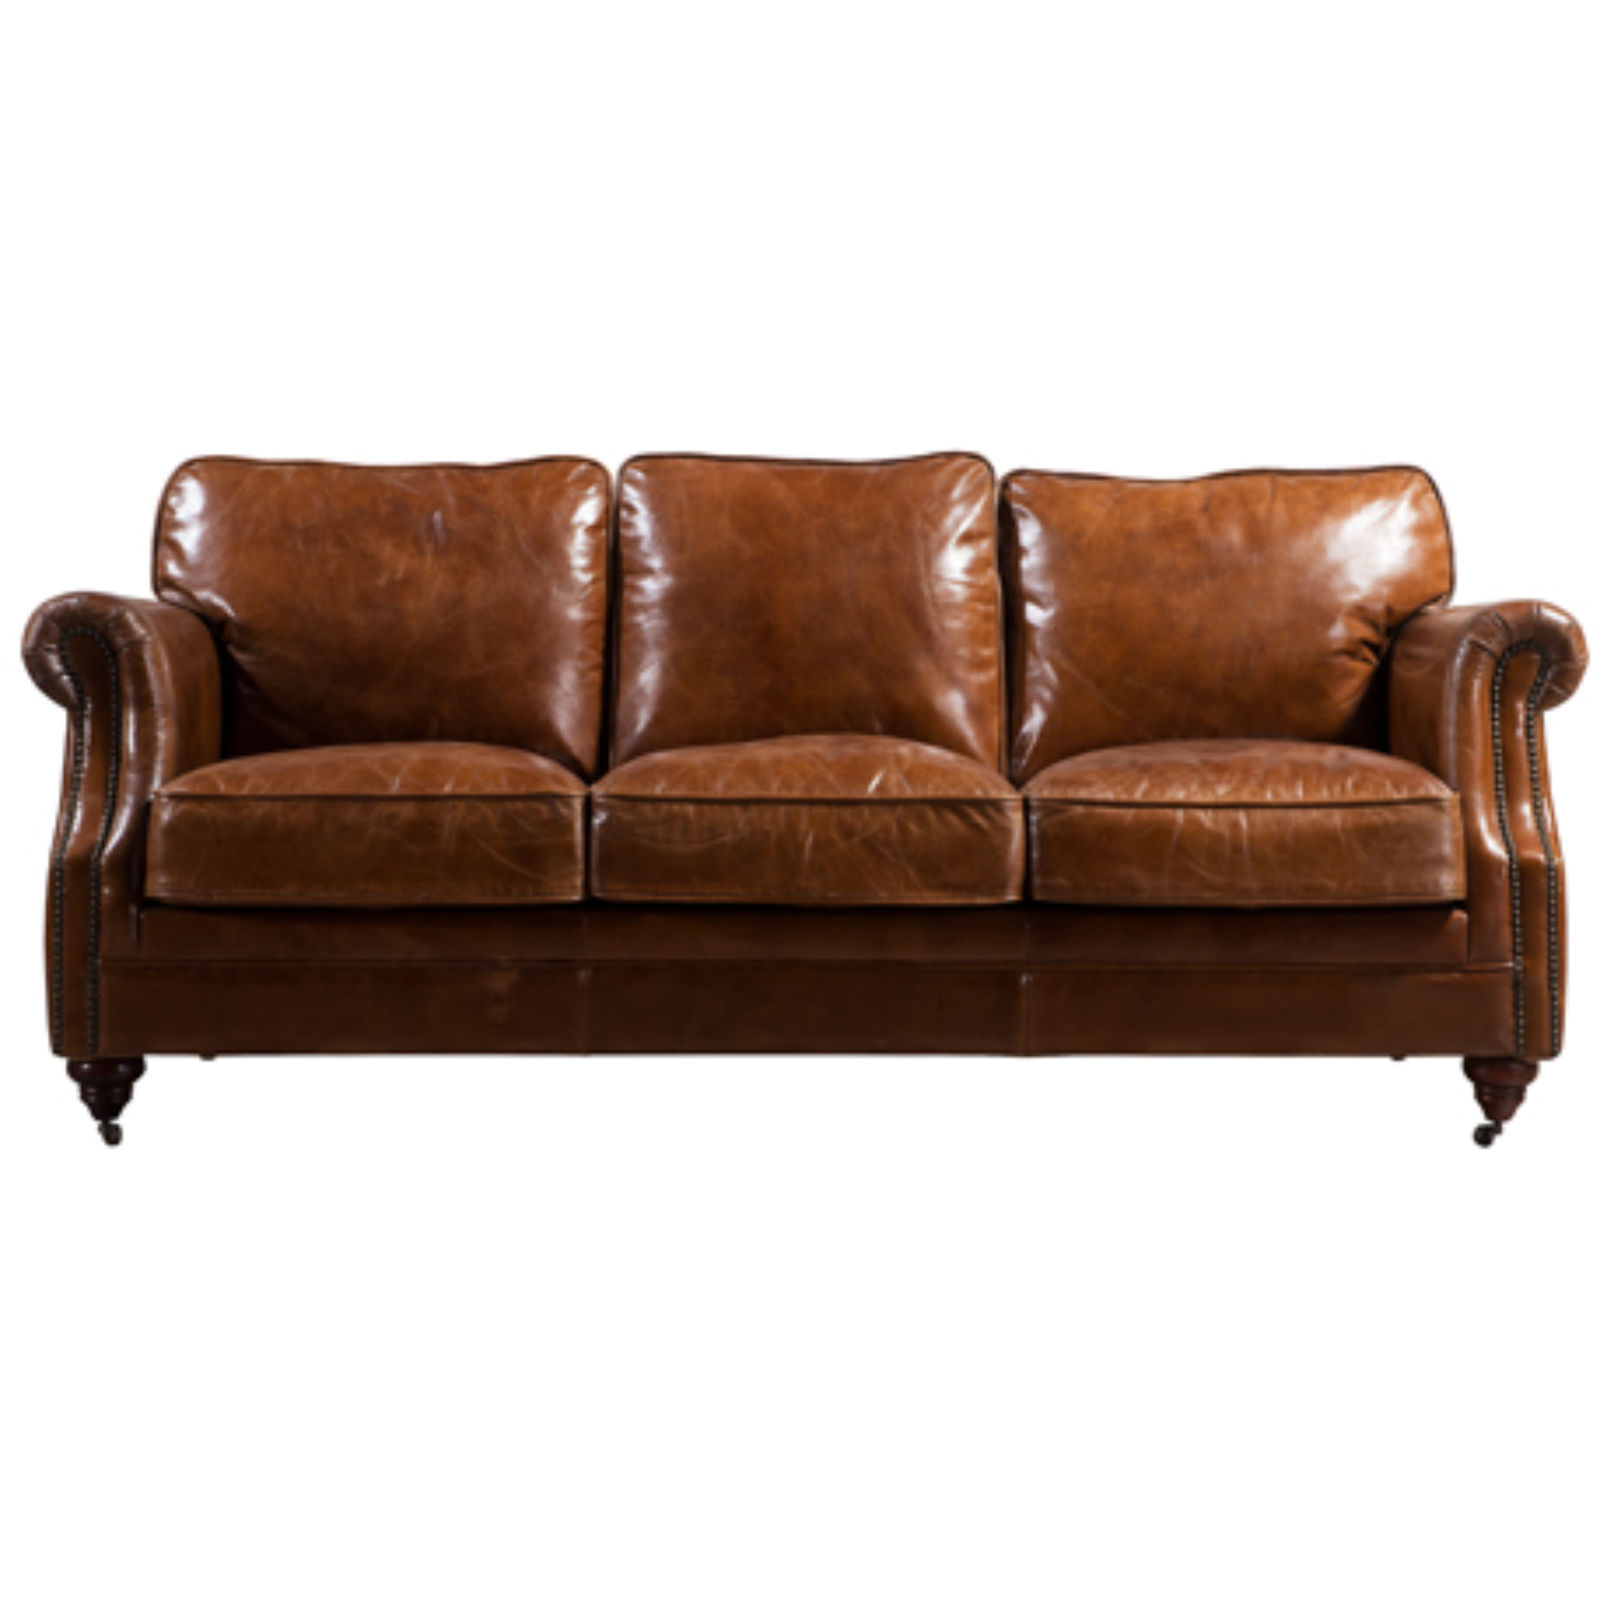 Luxury Vintage Distressed Leather 3 Seater Settee Sofa